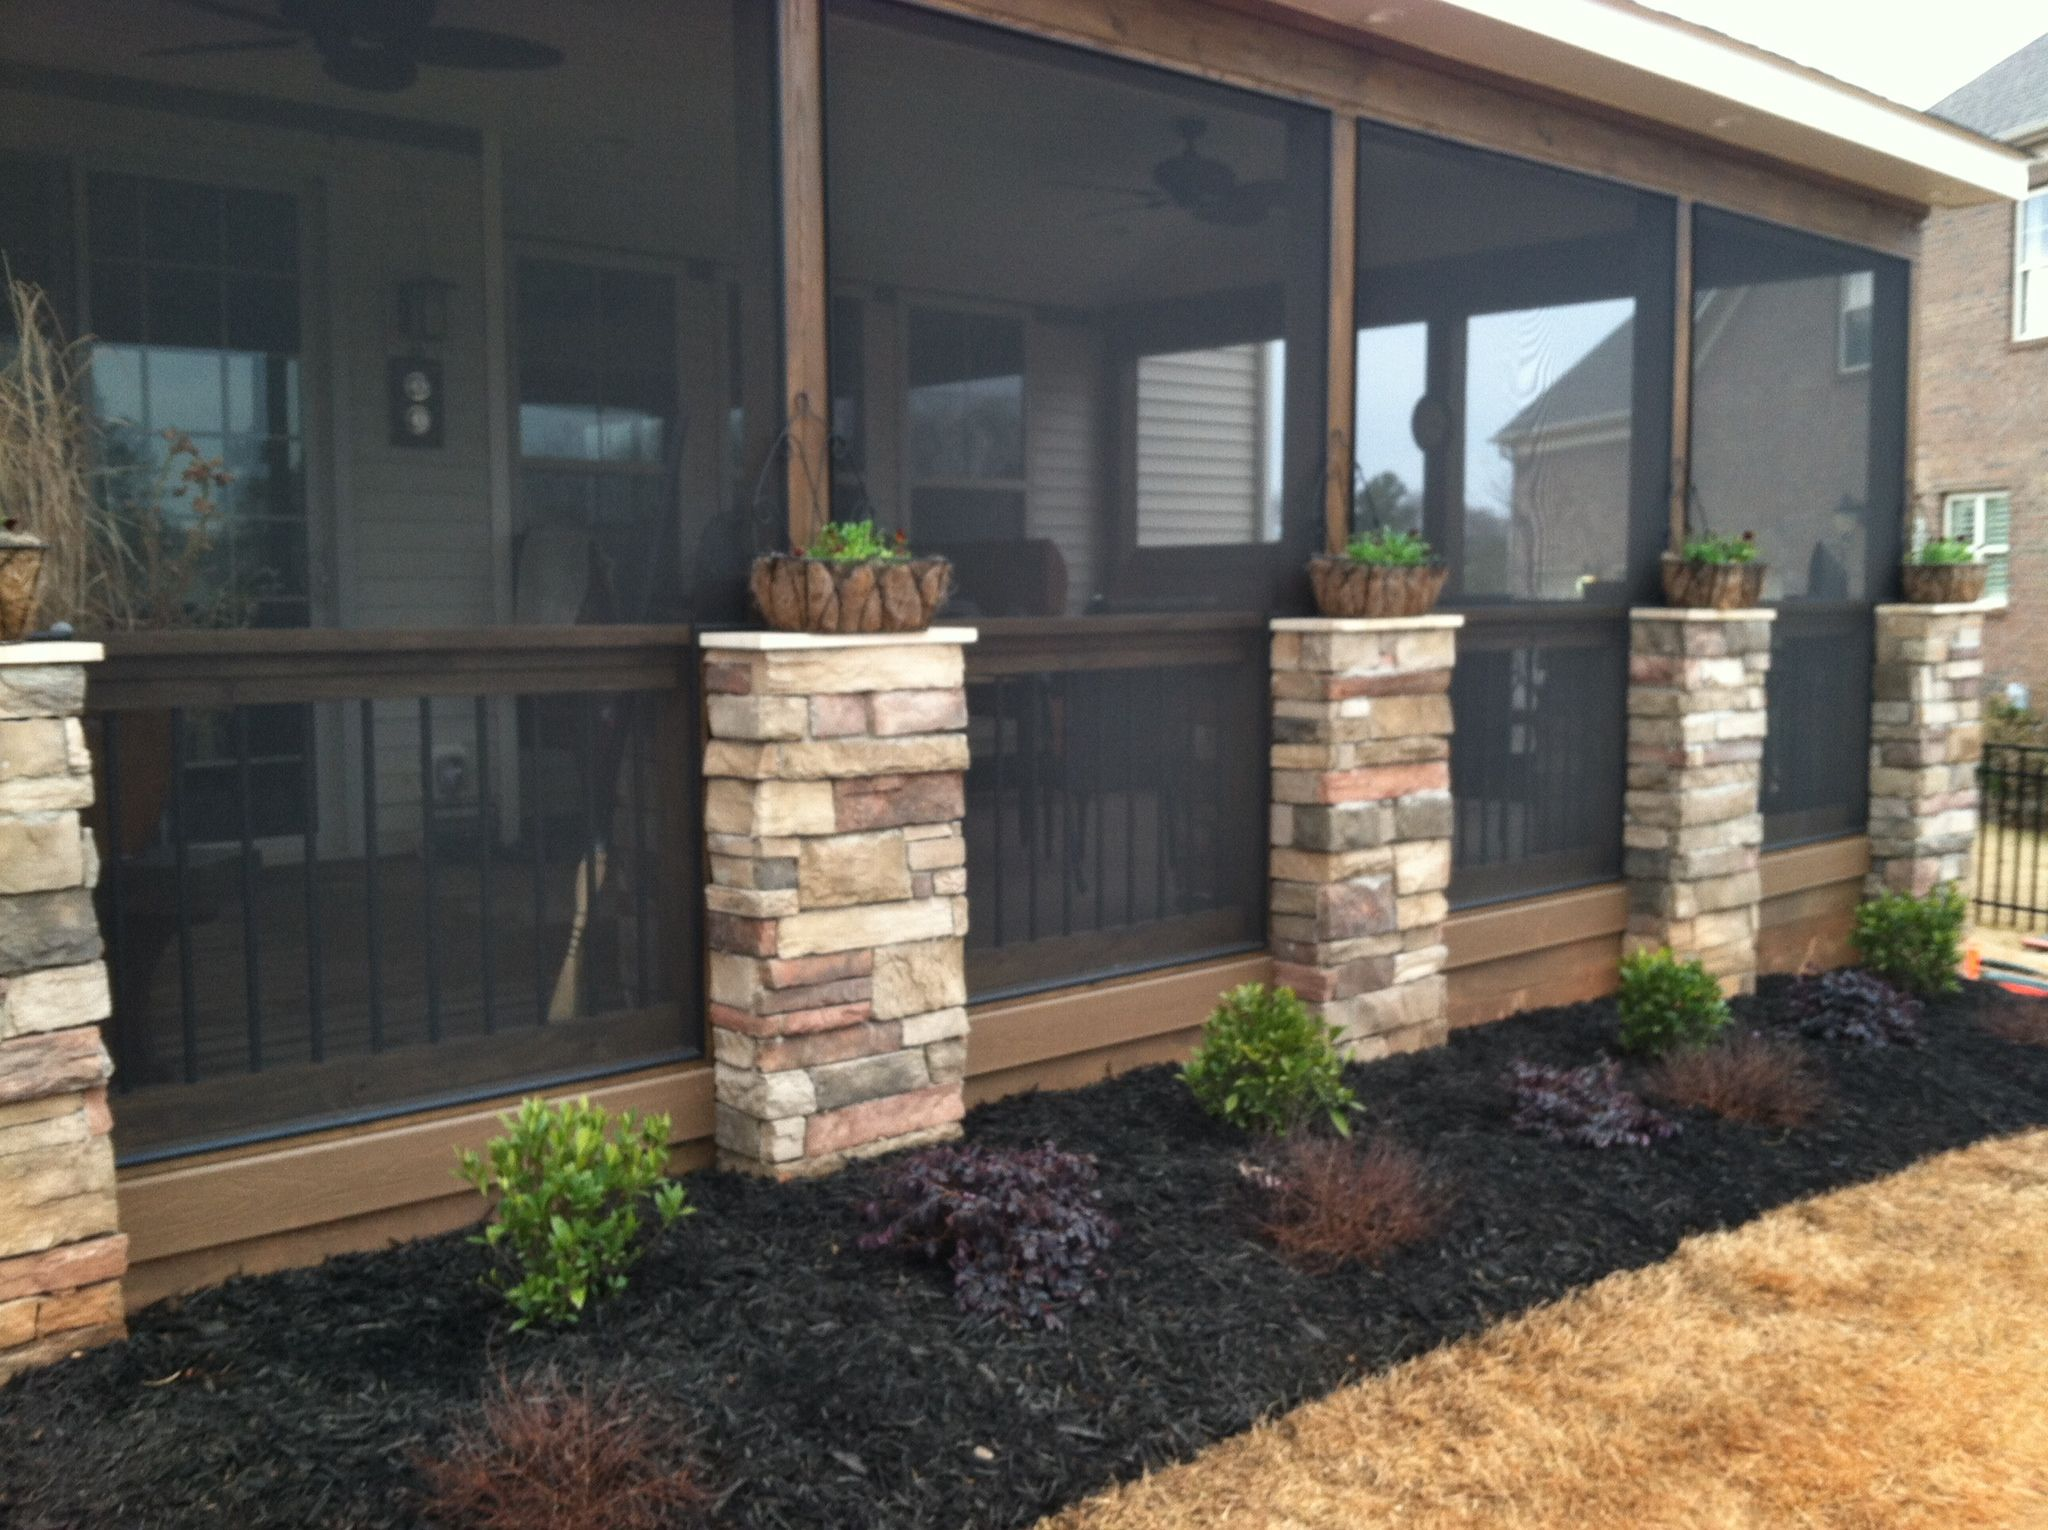 How To Screen In A Porch With Columns